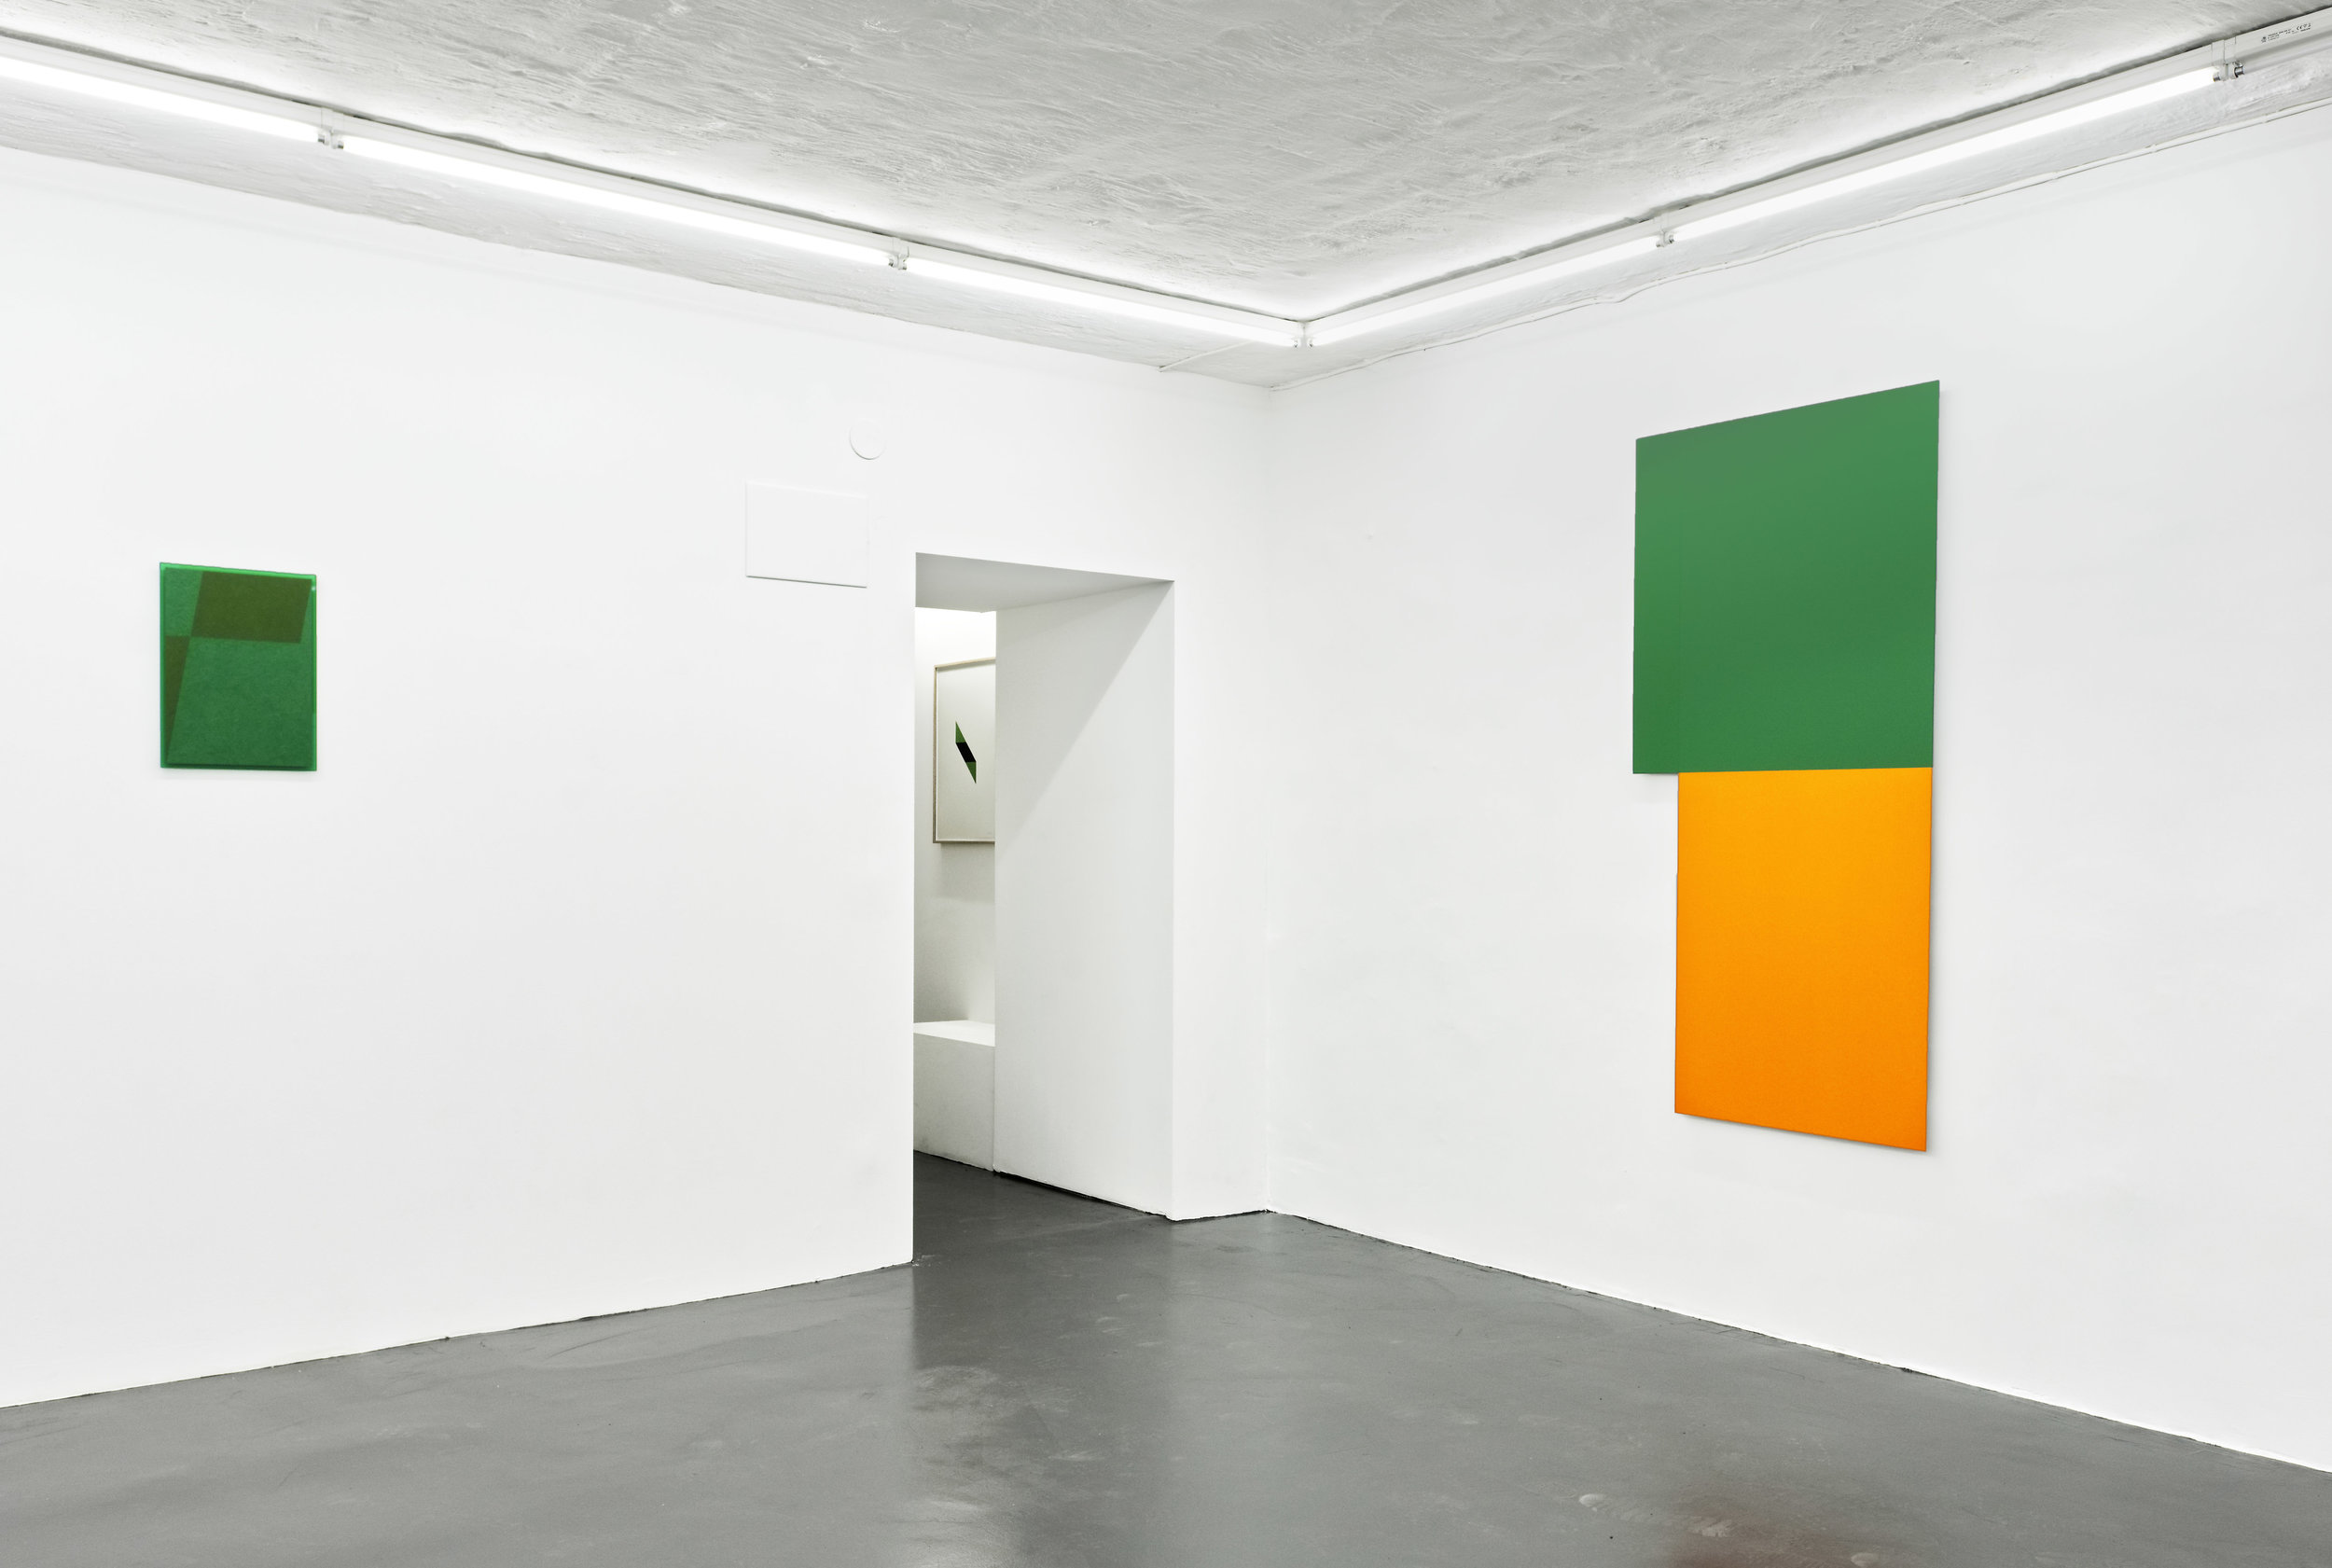 The Green Series nr. 17  and  Irregular Painting ( radiator cut out )